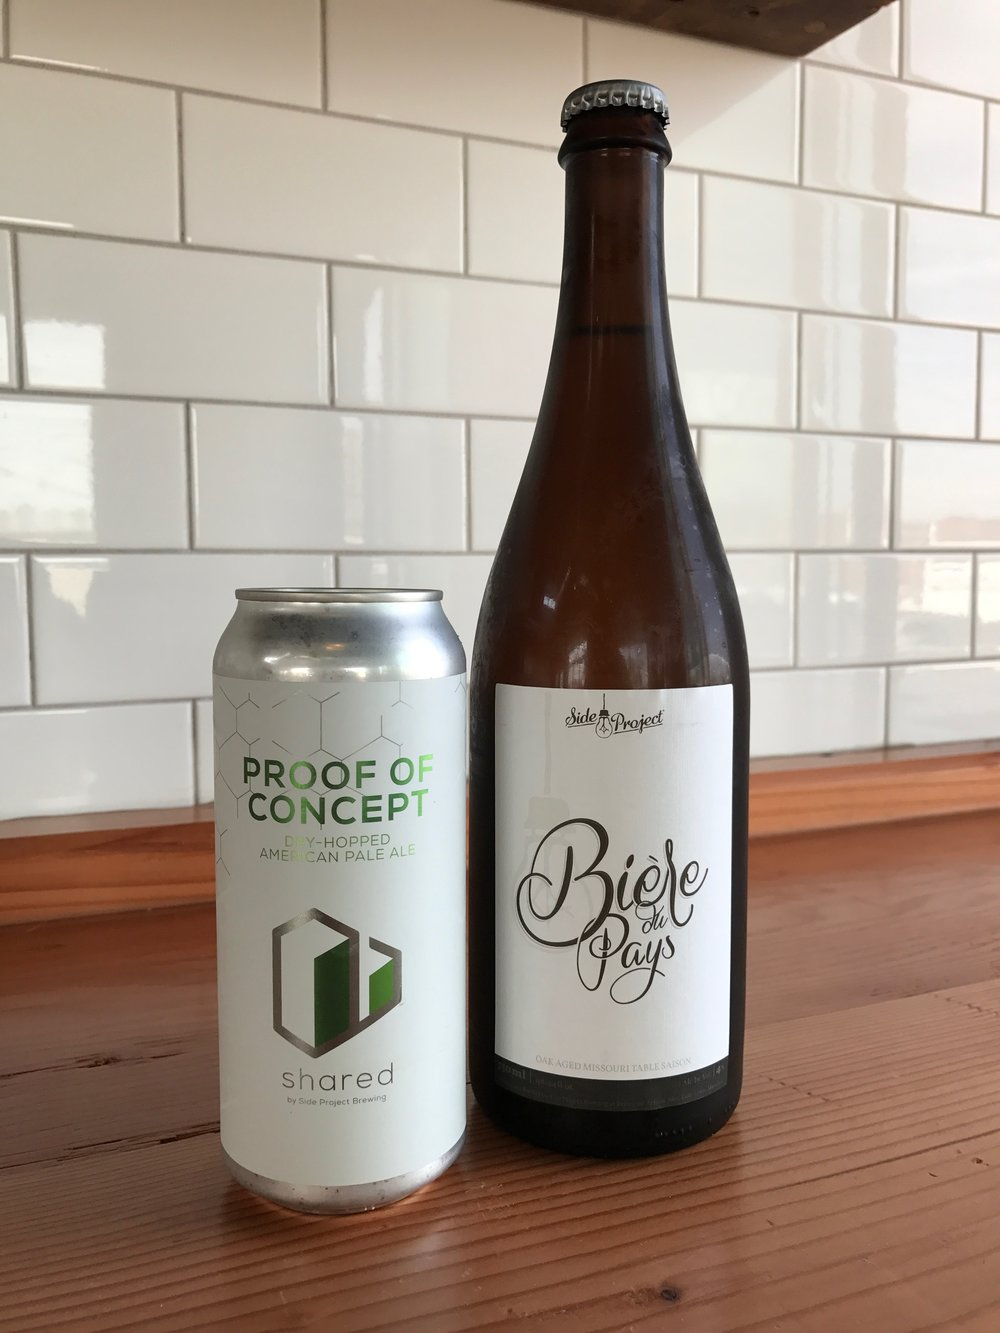 Shared Proof 0f Concept #3 and Side Project Bière du Pays Blend #5